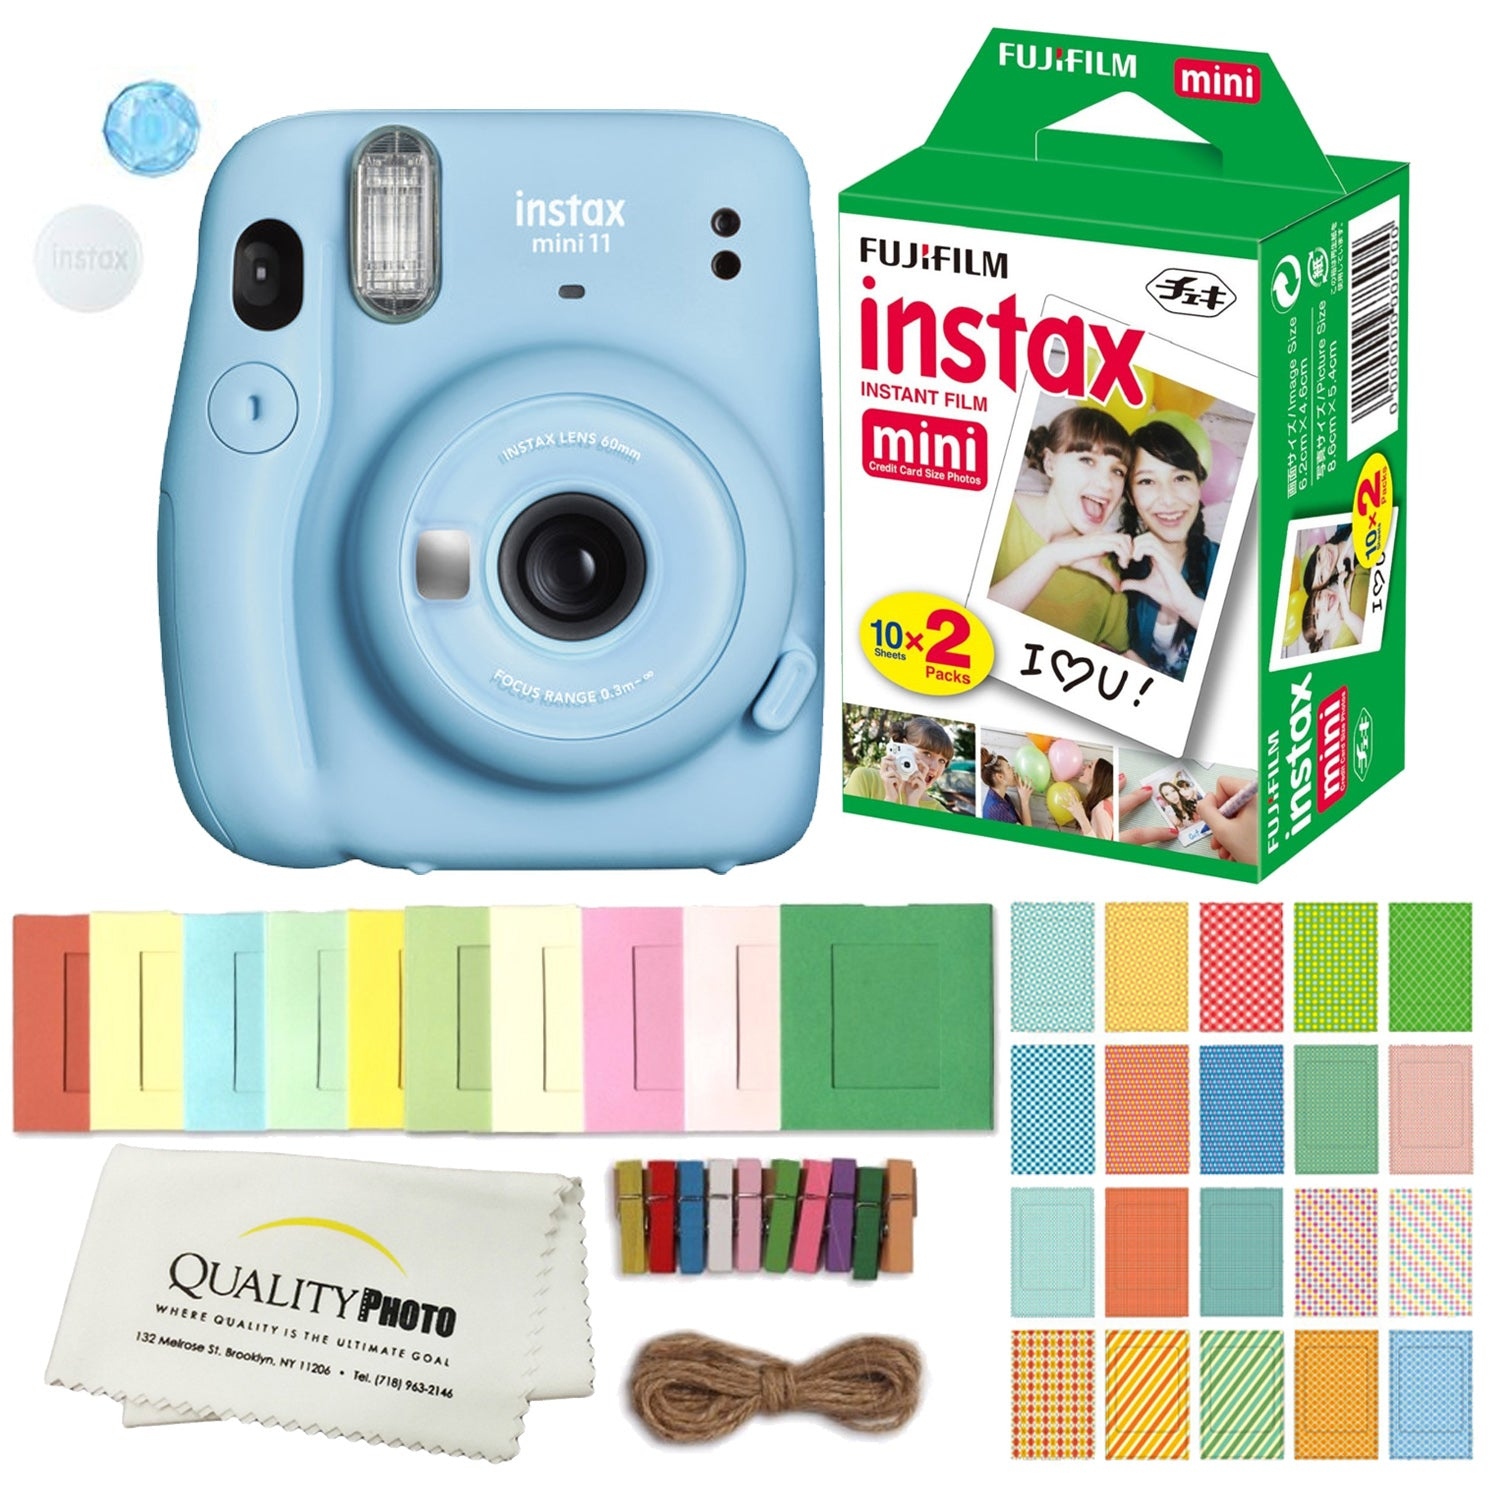 FUJIFILM INSTAX Mini 11 Instant Film Camera (Sky Blue) Plus Instax Film and Accessories Stickers, Hanging frames and Microfiber Cloth